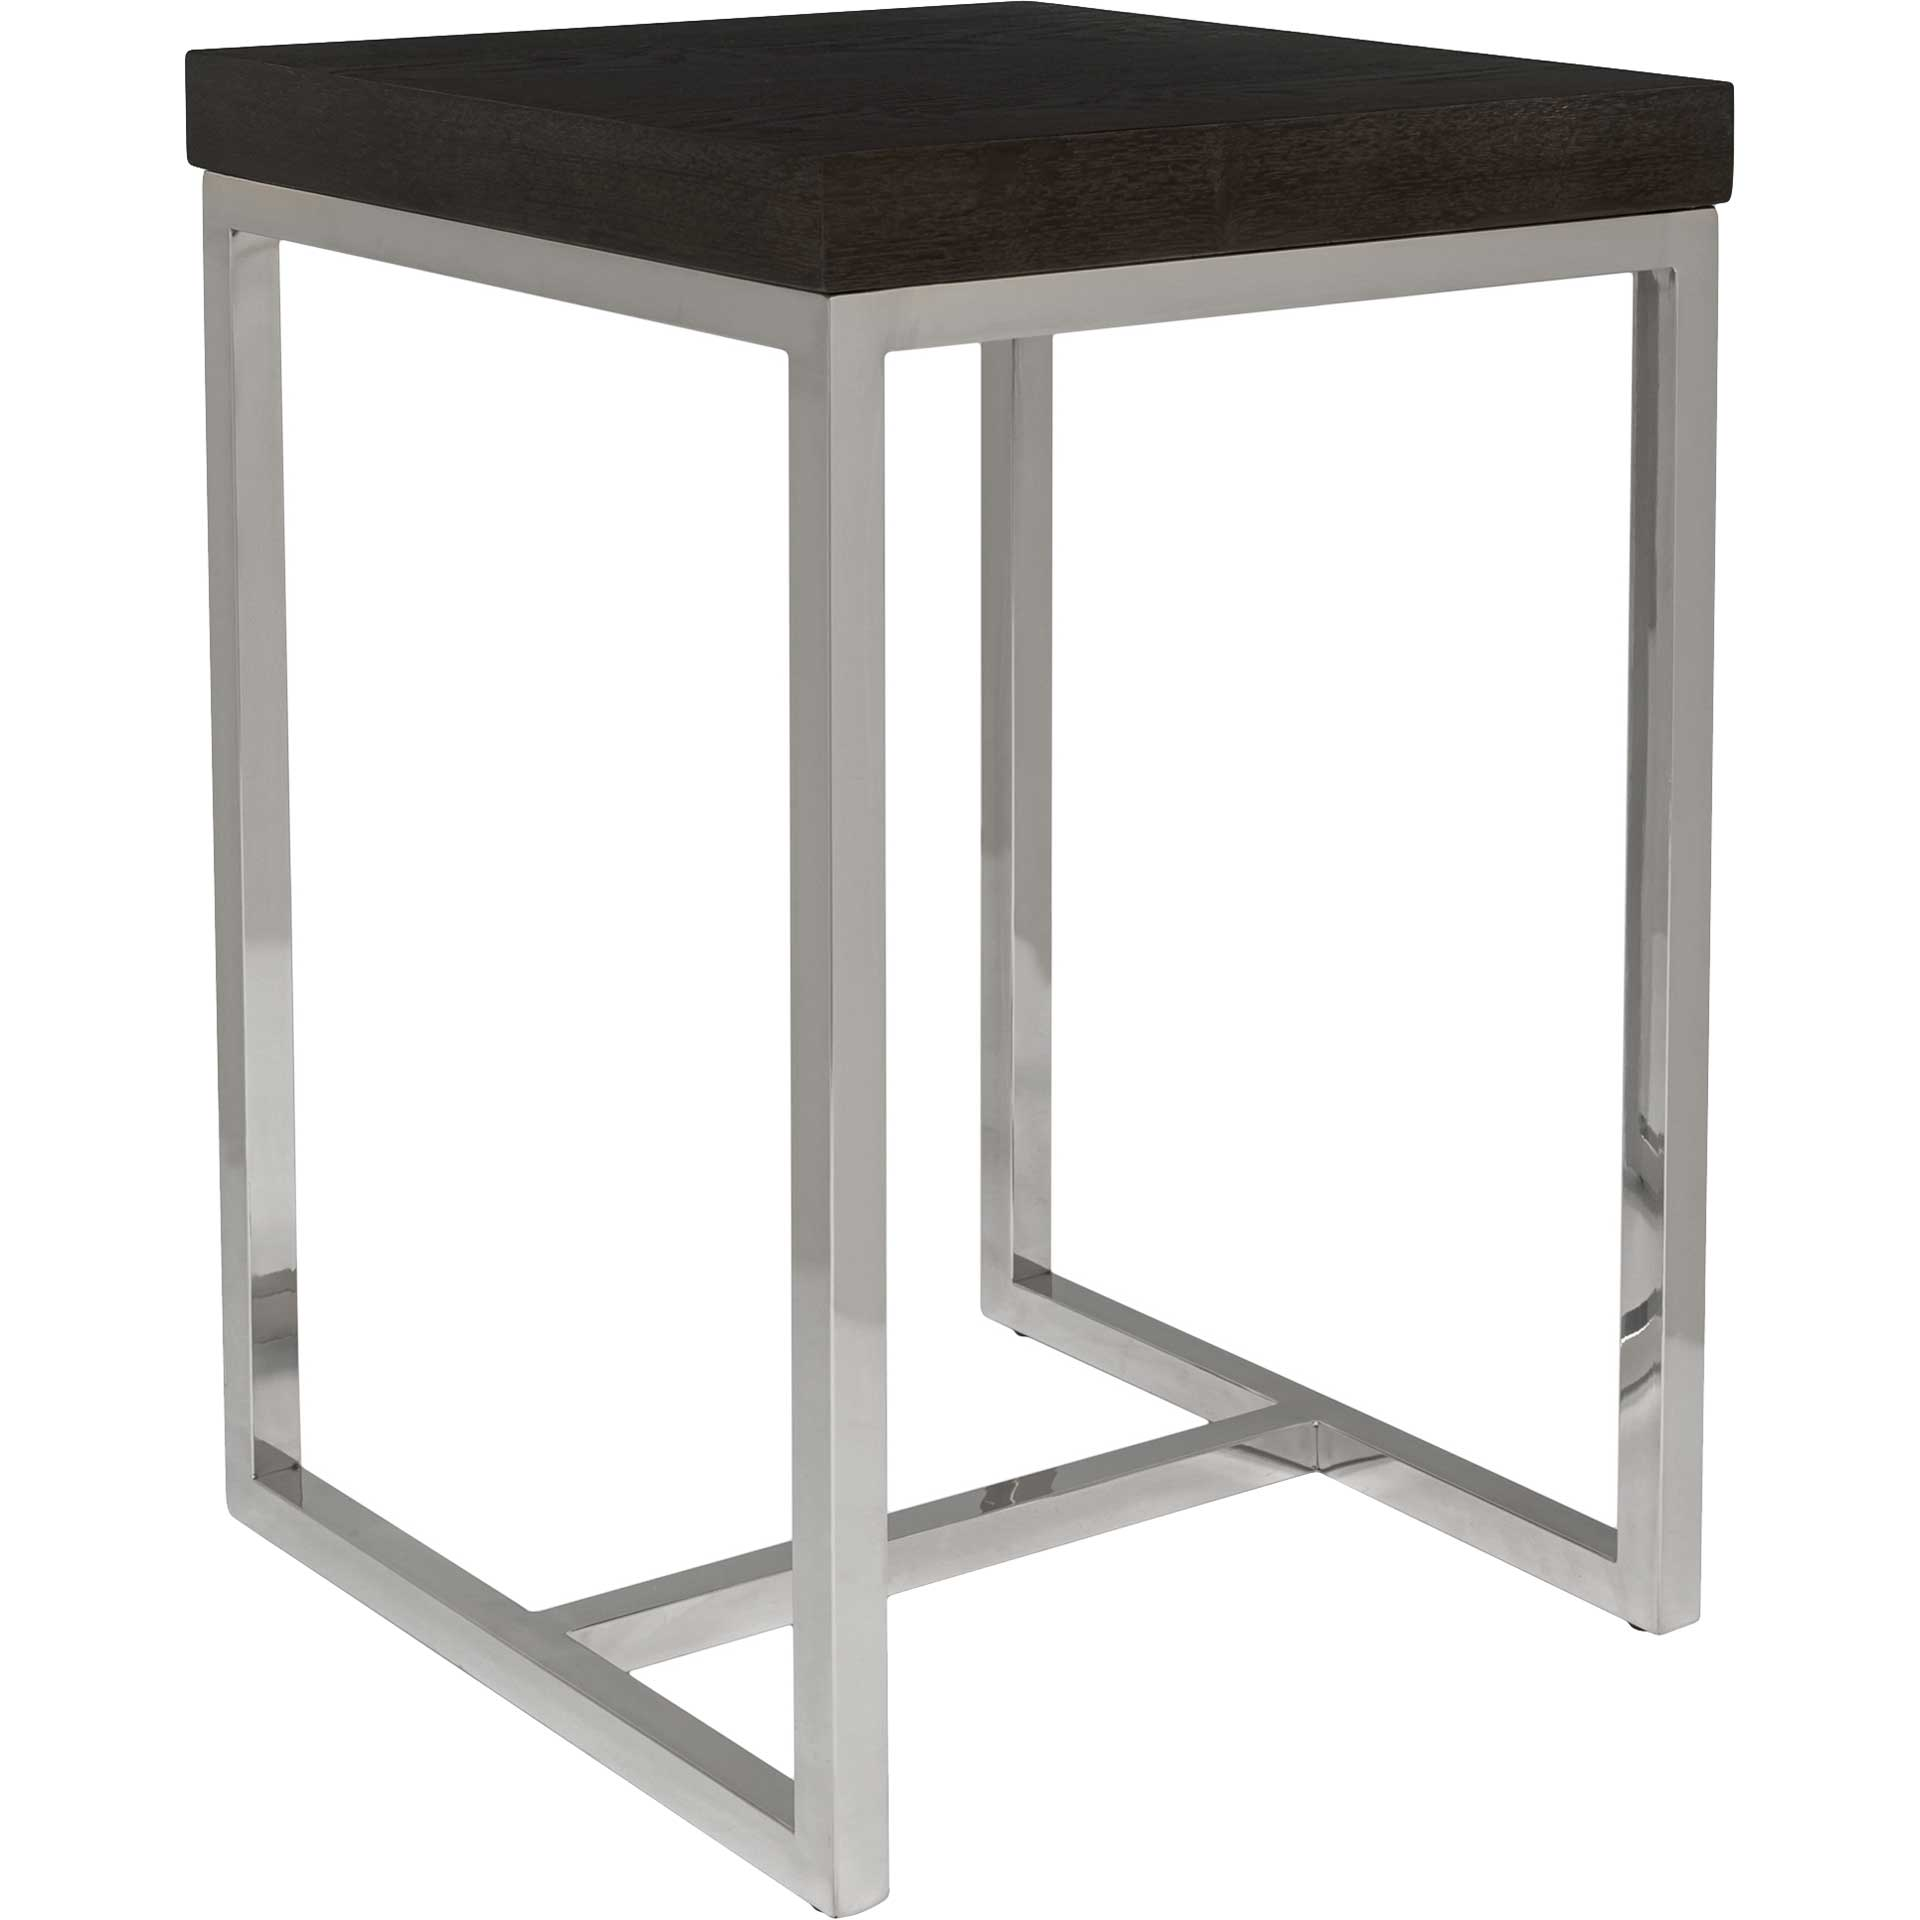 Tullis Black Glass Top Square End Table Black